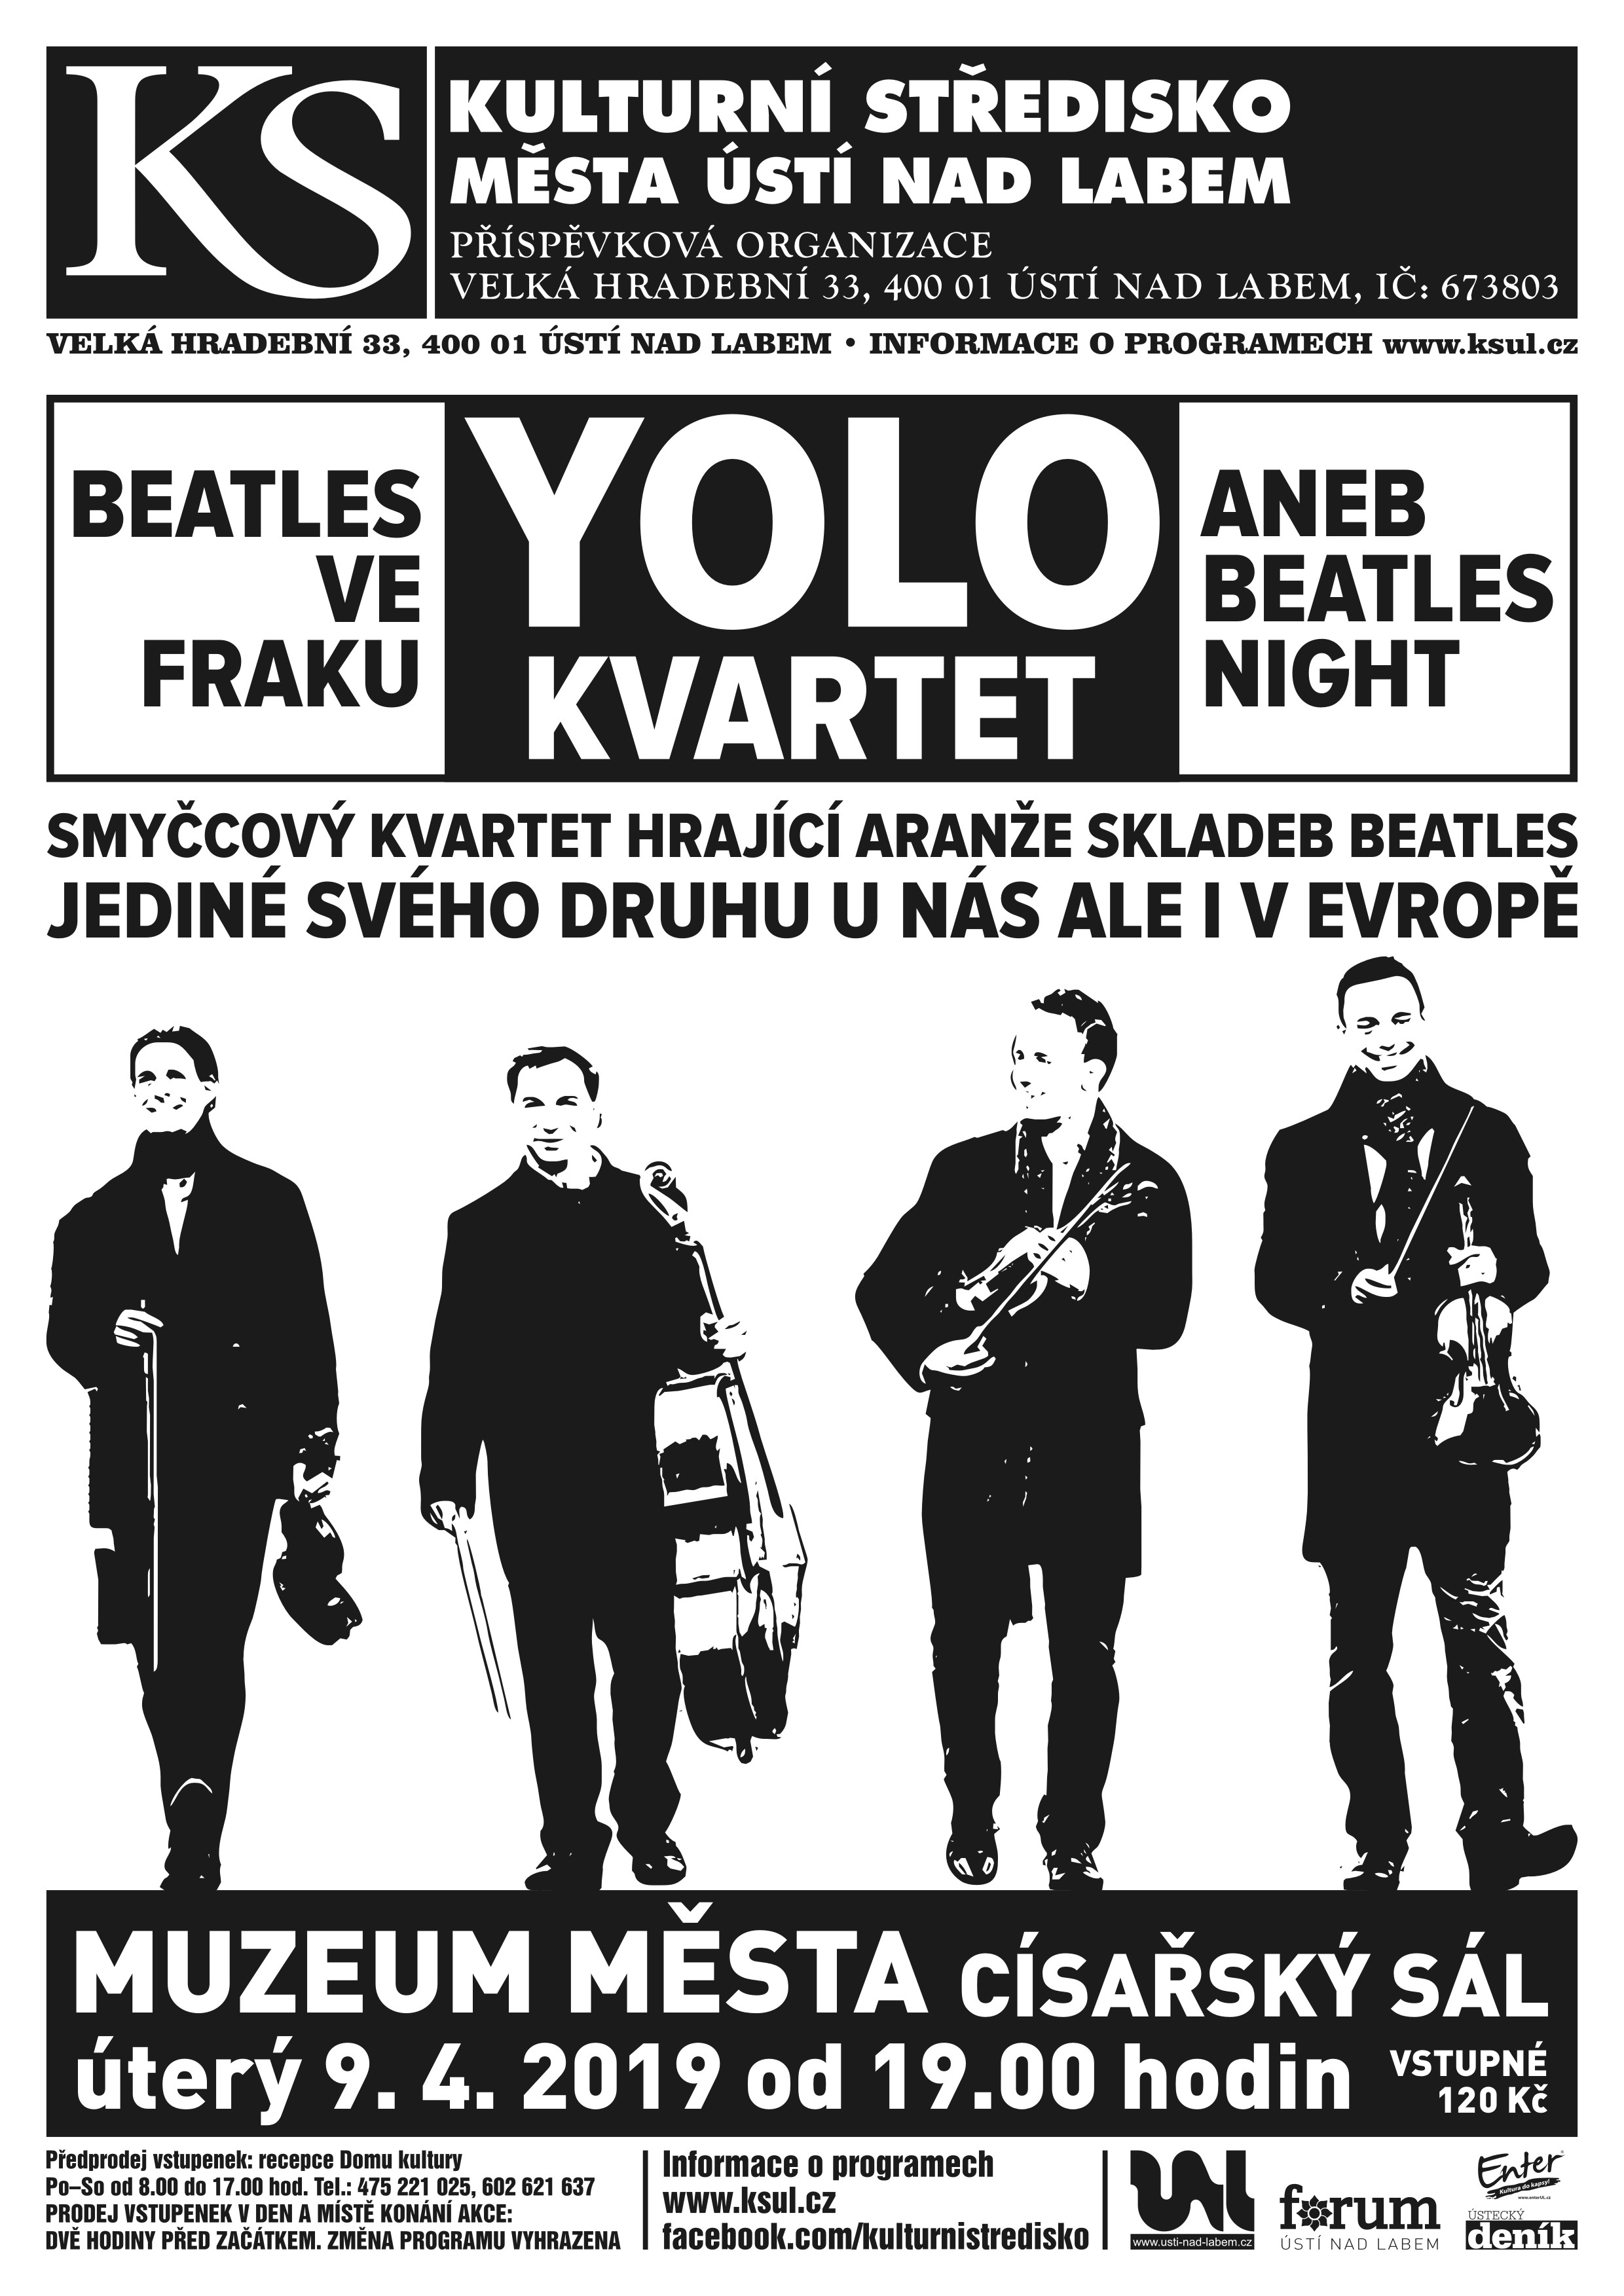 BEATLES VE FRAKU (BEATLES NIGHT)